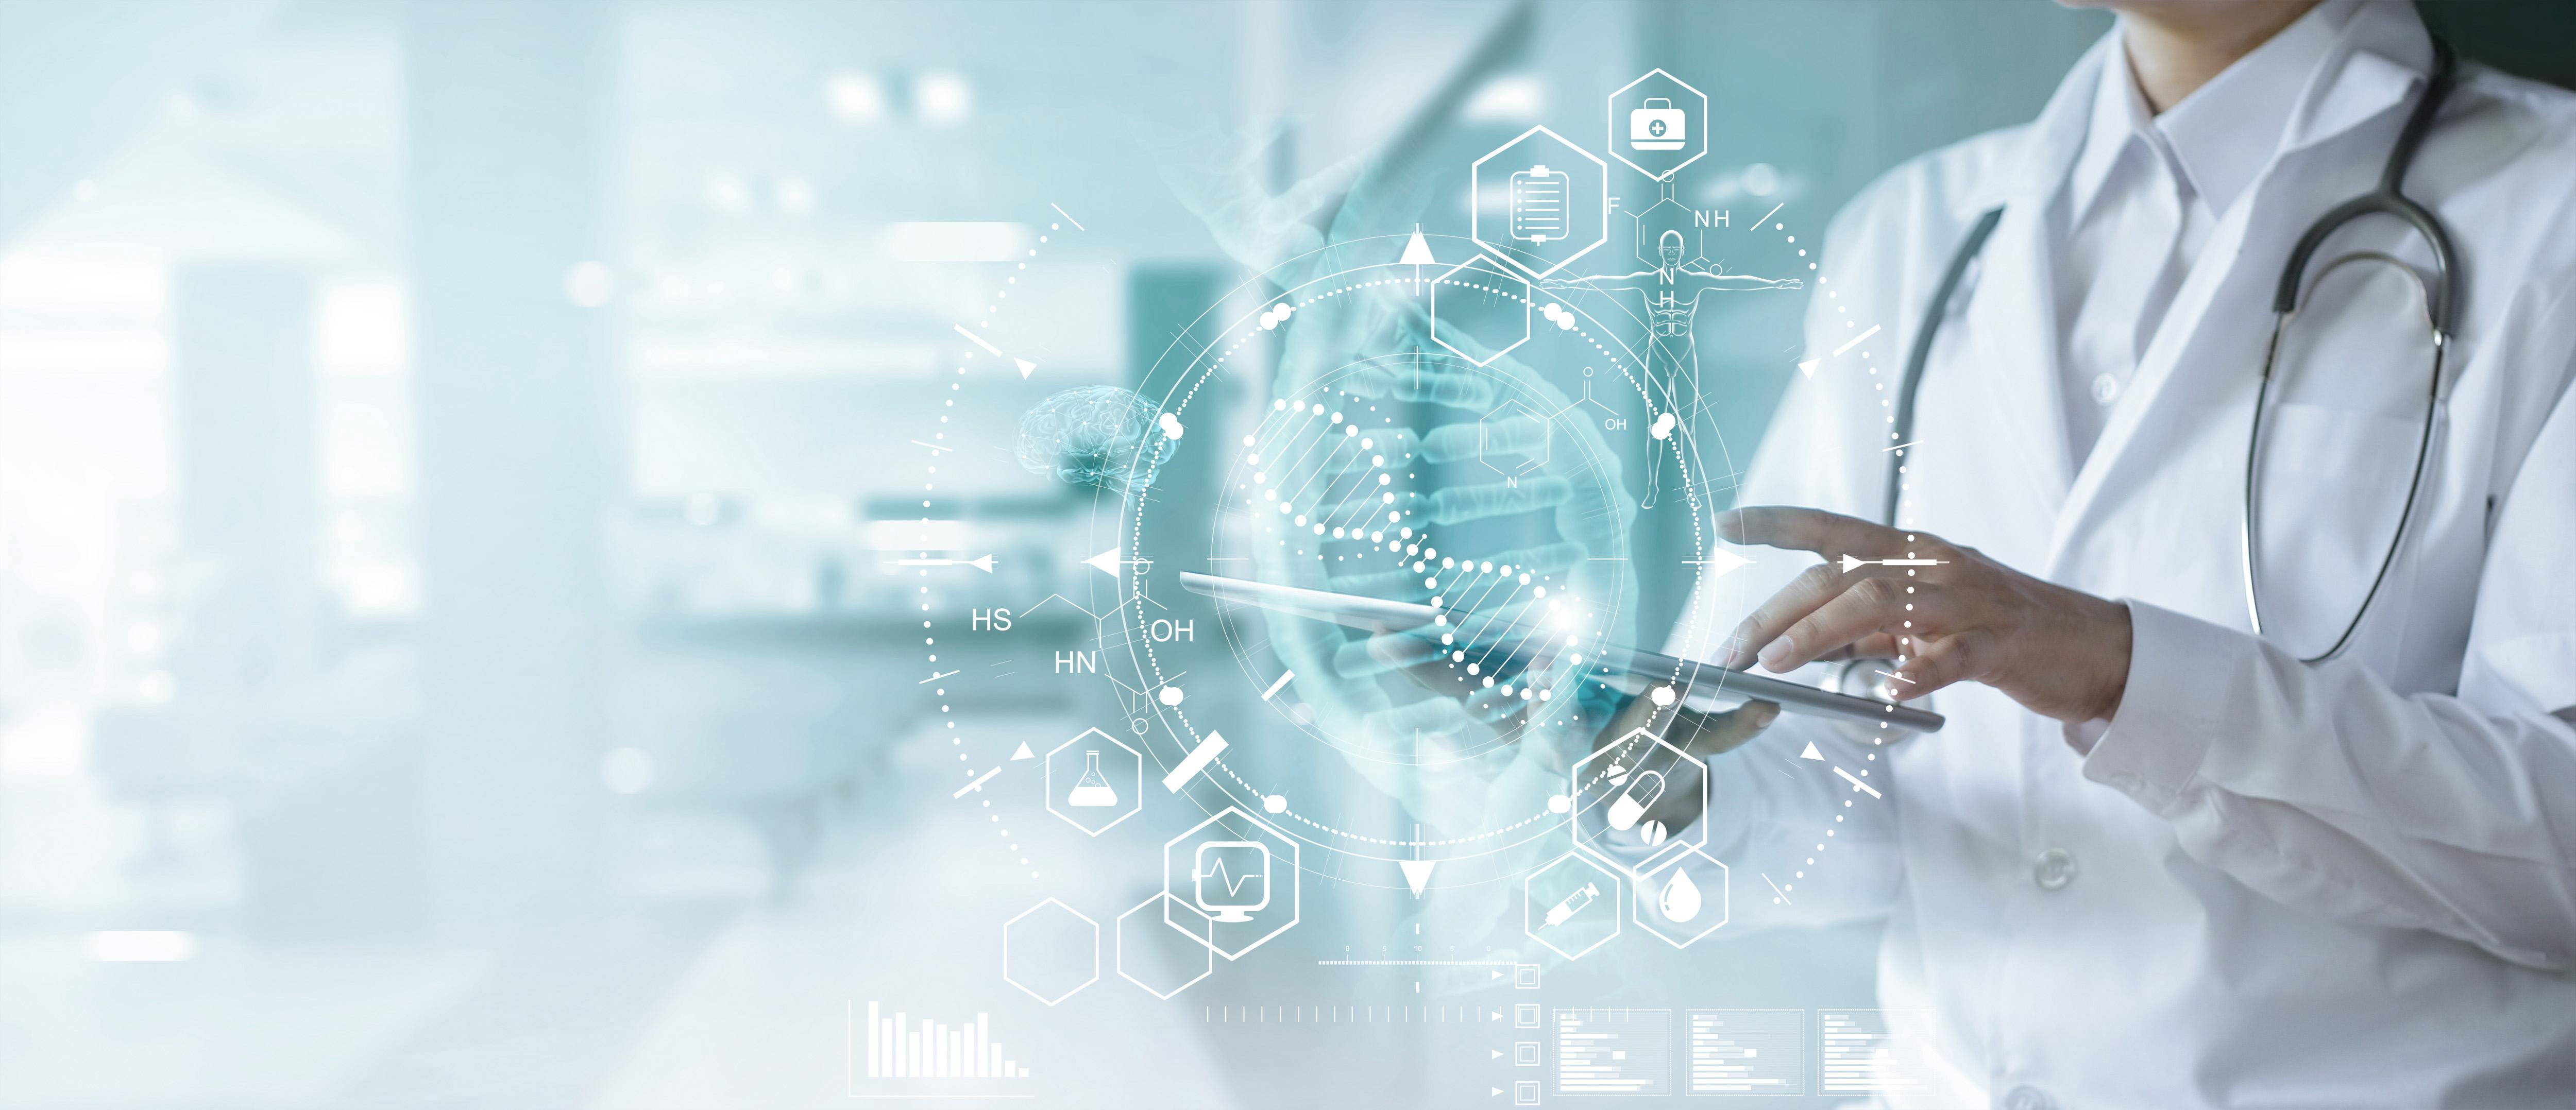 Express Scripts launches new digital formulary aimed at lowering drug costs, increasing access